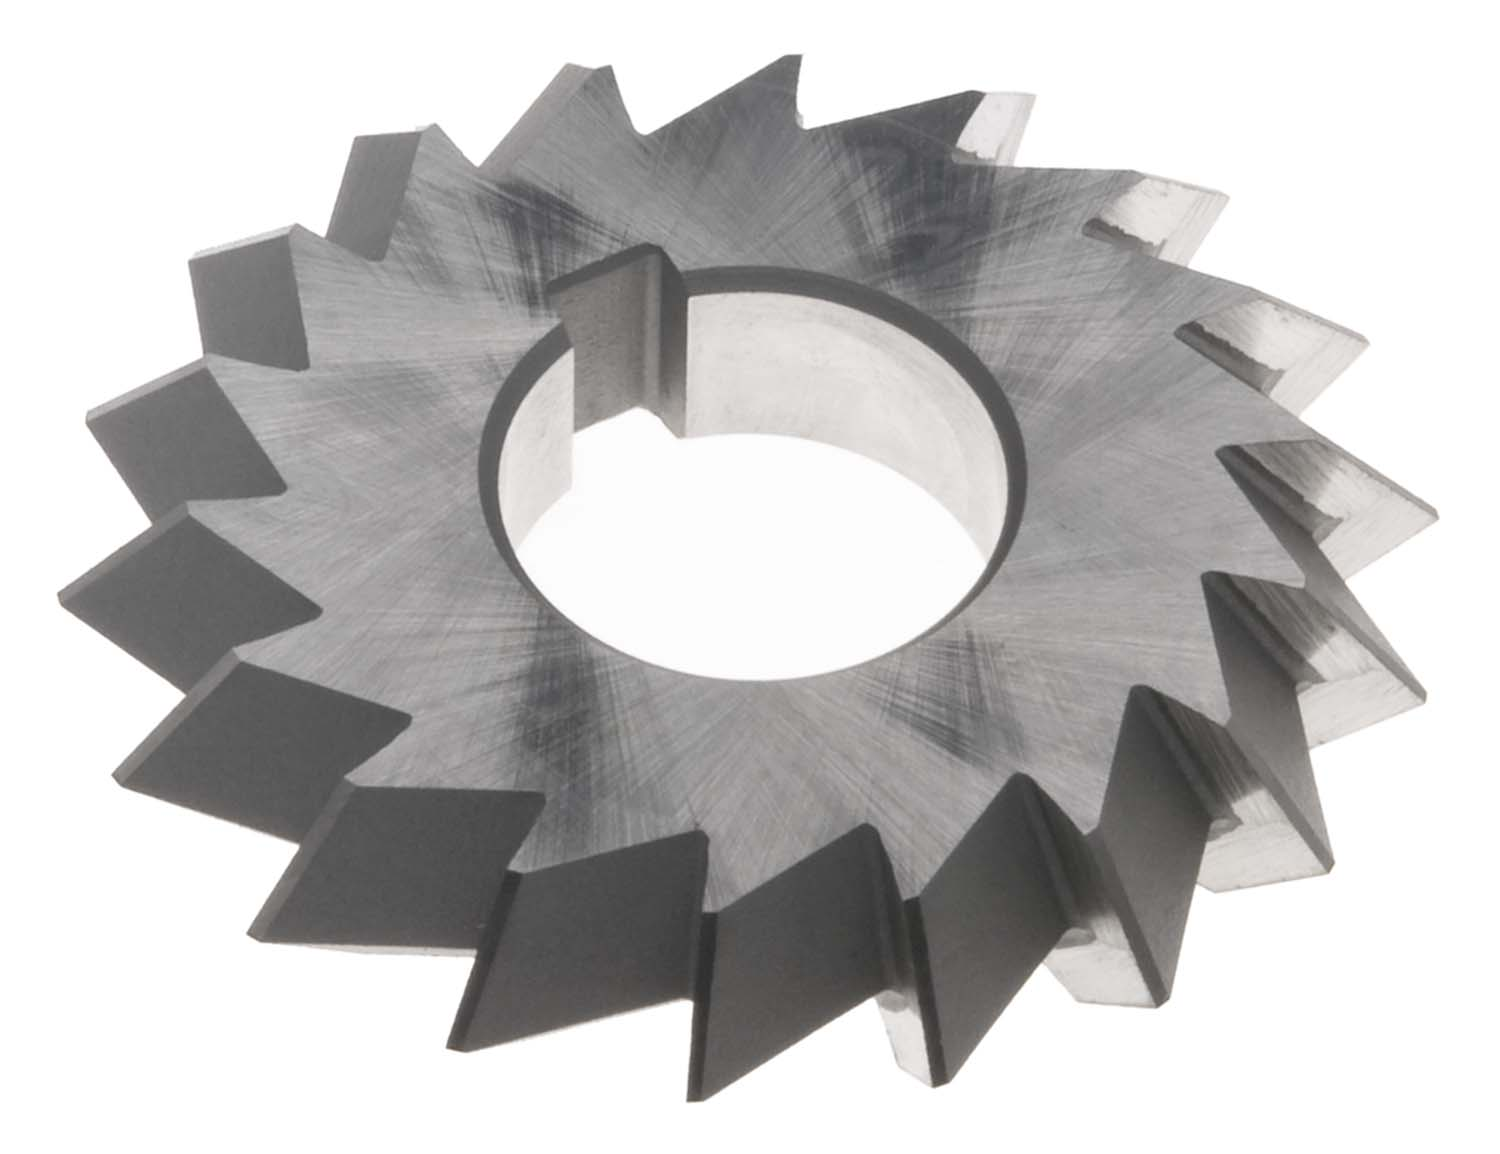 "4 X 3/4 X 1"" 90 Degree Double Angle Cutter, High Speed Steel"